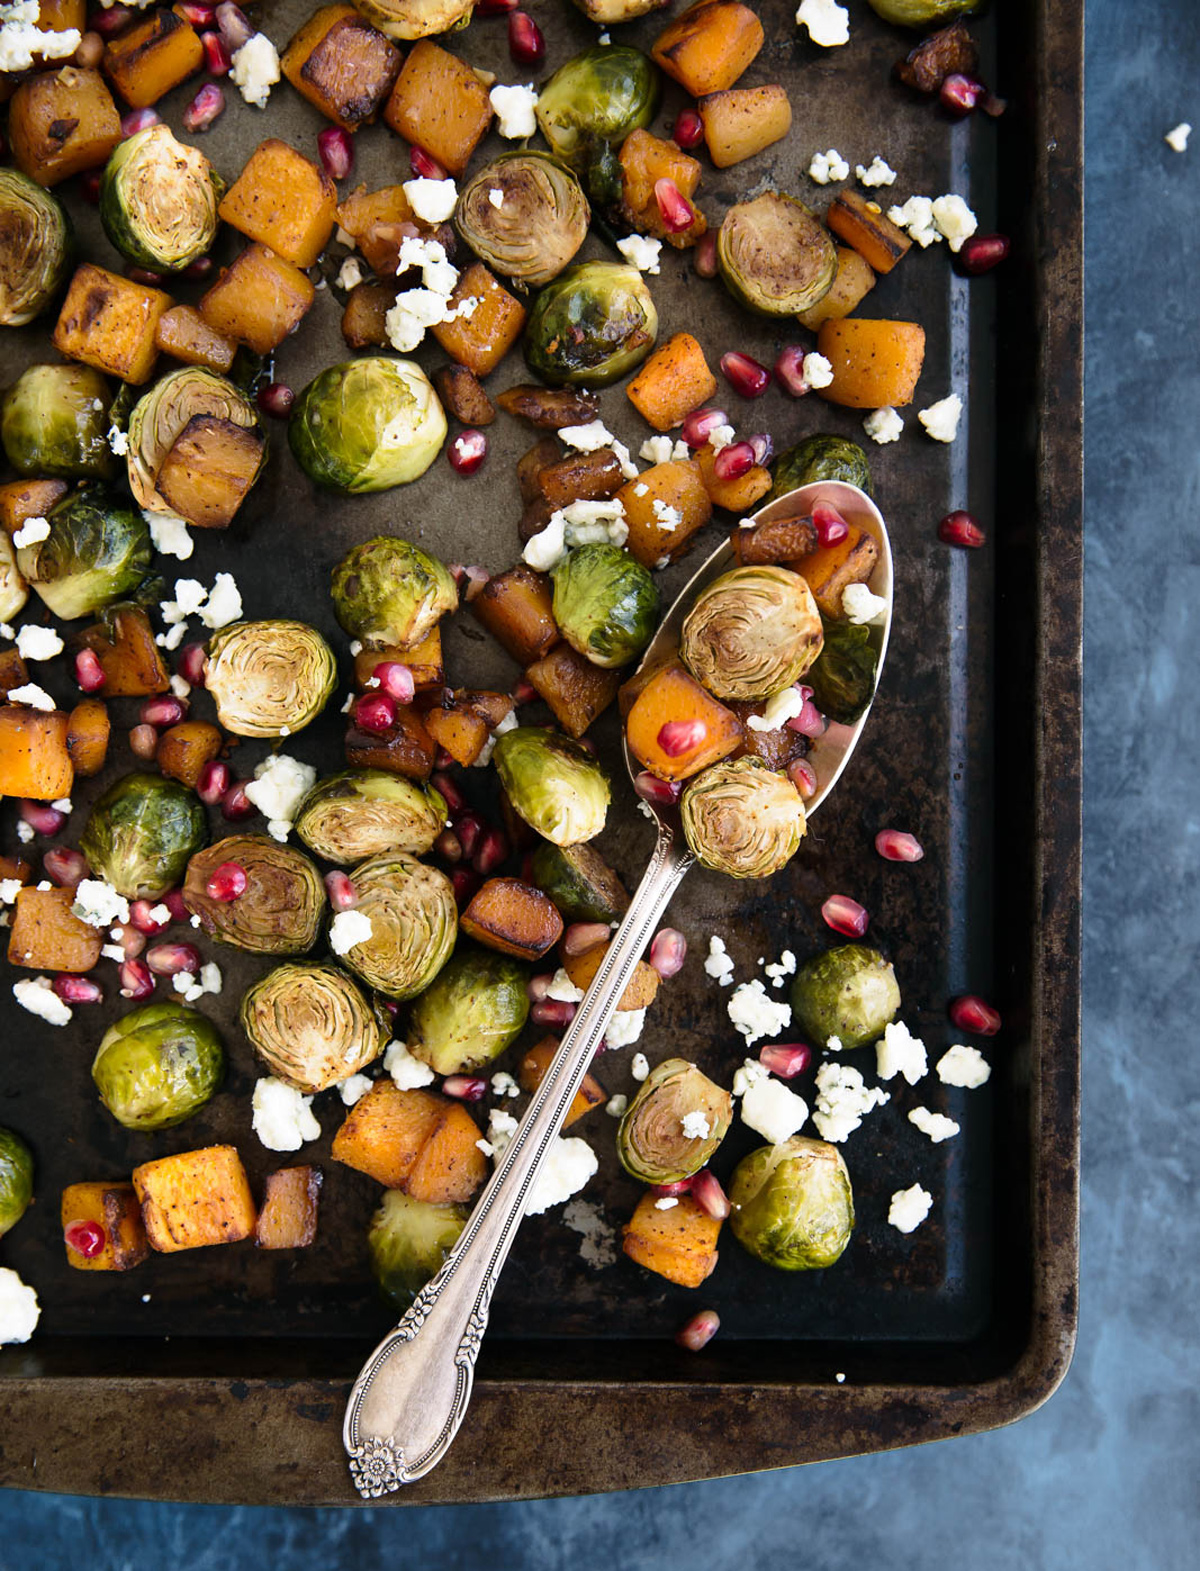 Brussels sprouts with squash and gorgonzola